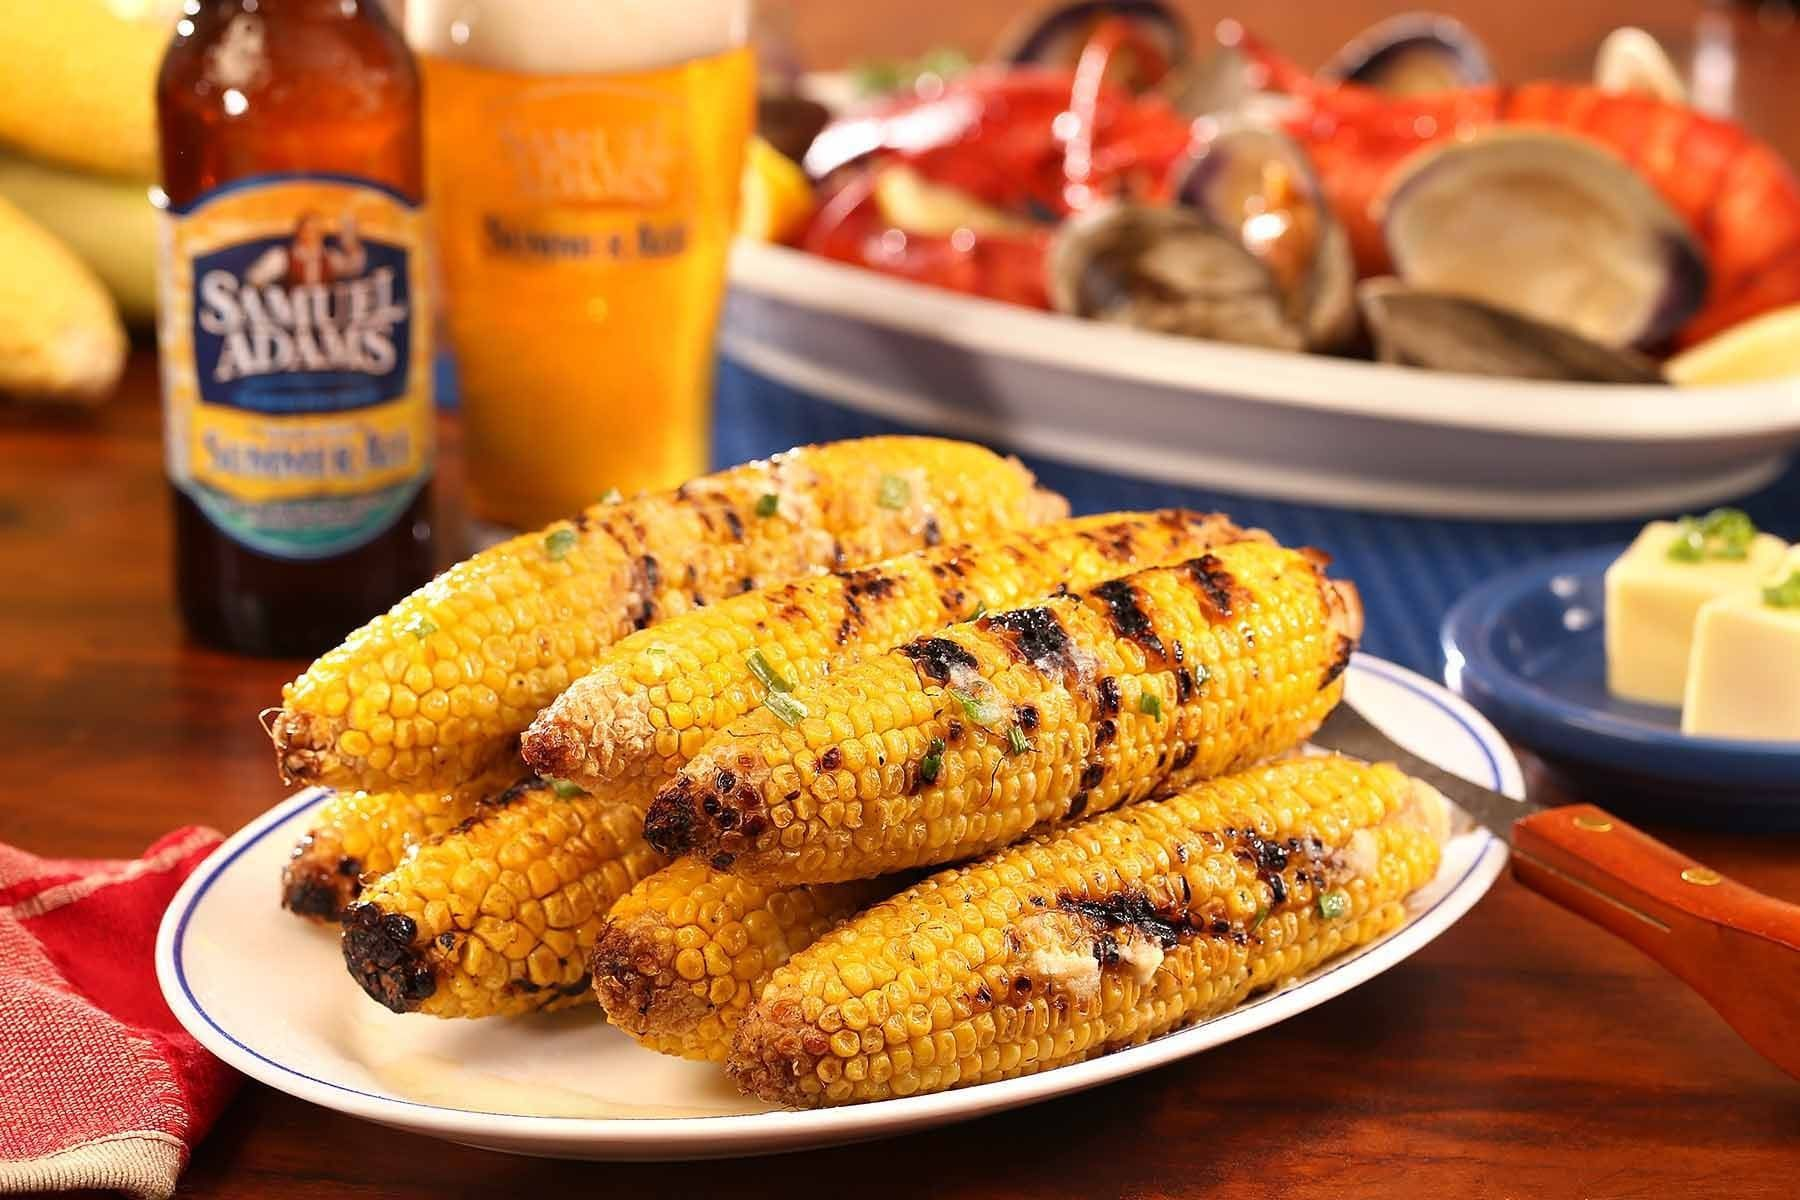 Lou-Manna-Grilled-Corn-on-the-Cob-with-Sam-Adams-Summer-Ale